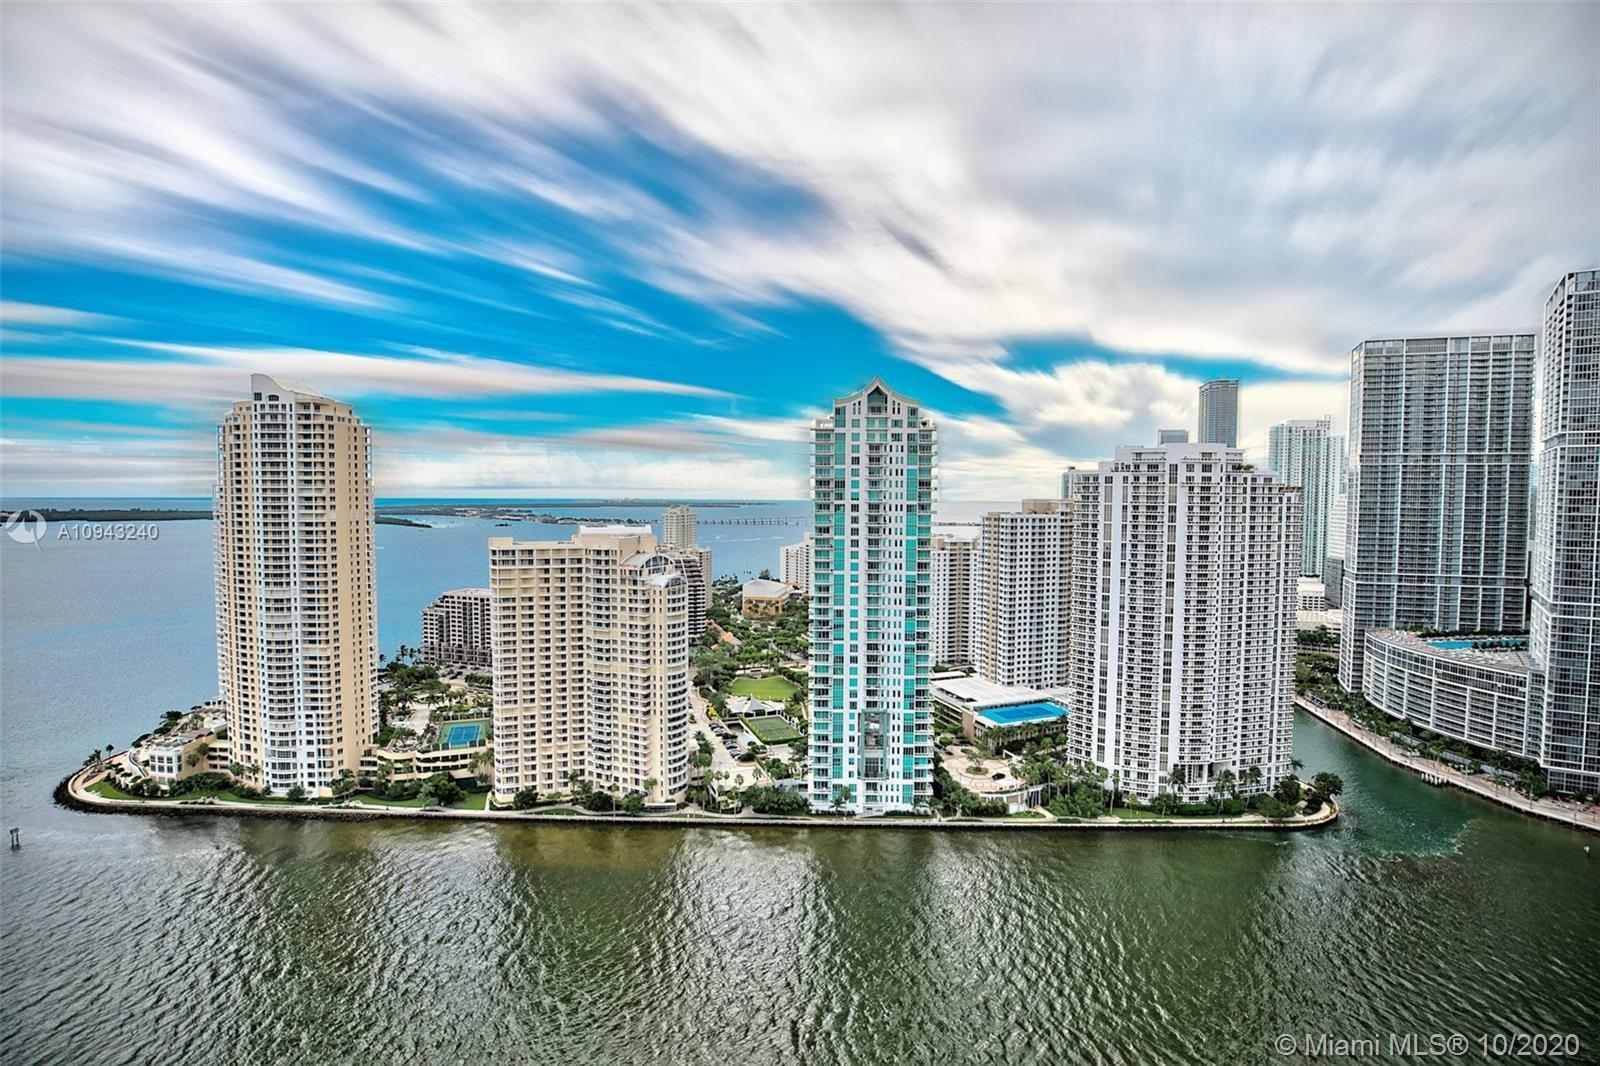 Beautiful 2bdrms 2bths with direct views of Biscayne Bay, Miami River and Brickell Skyline. Unit com